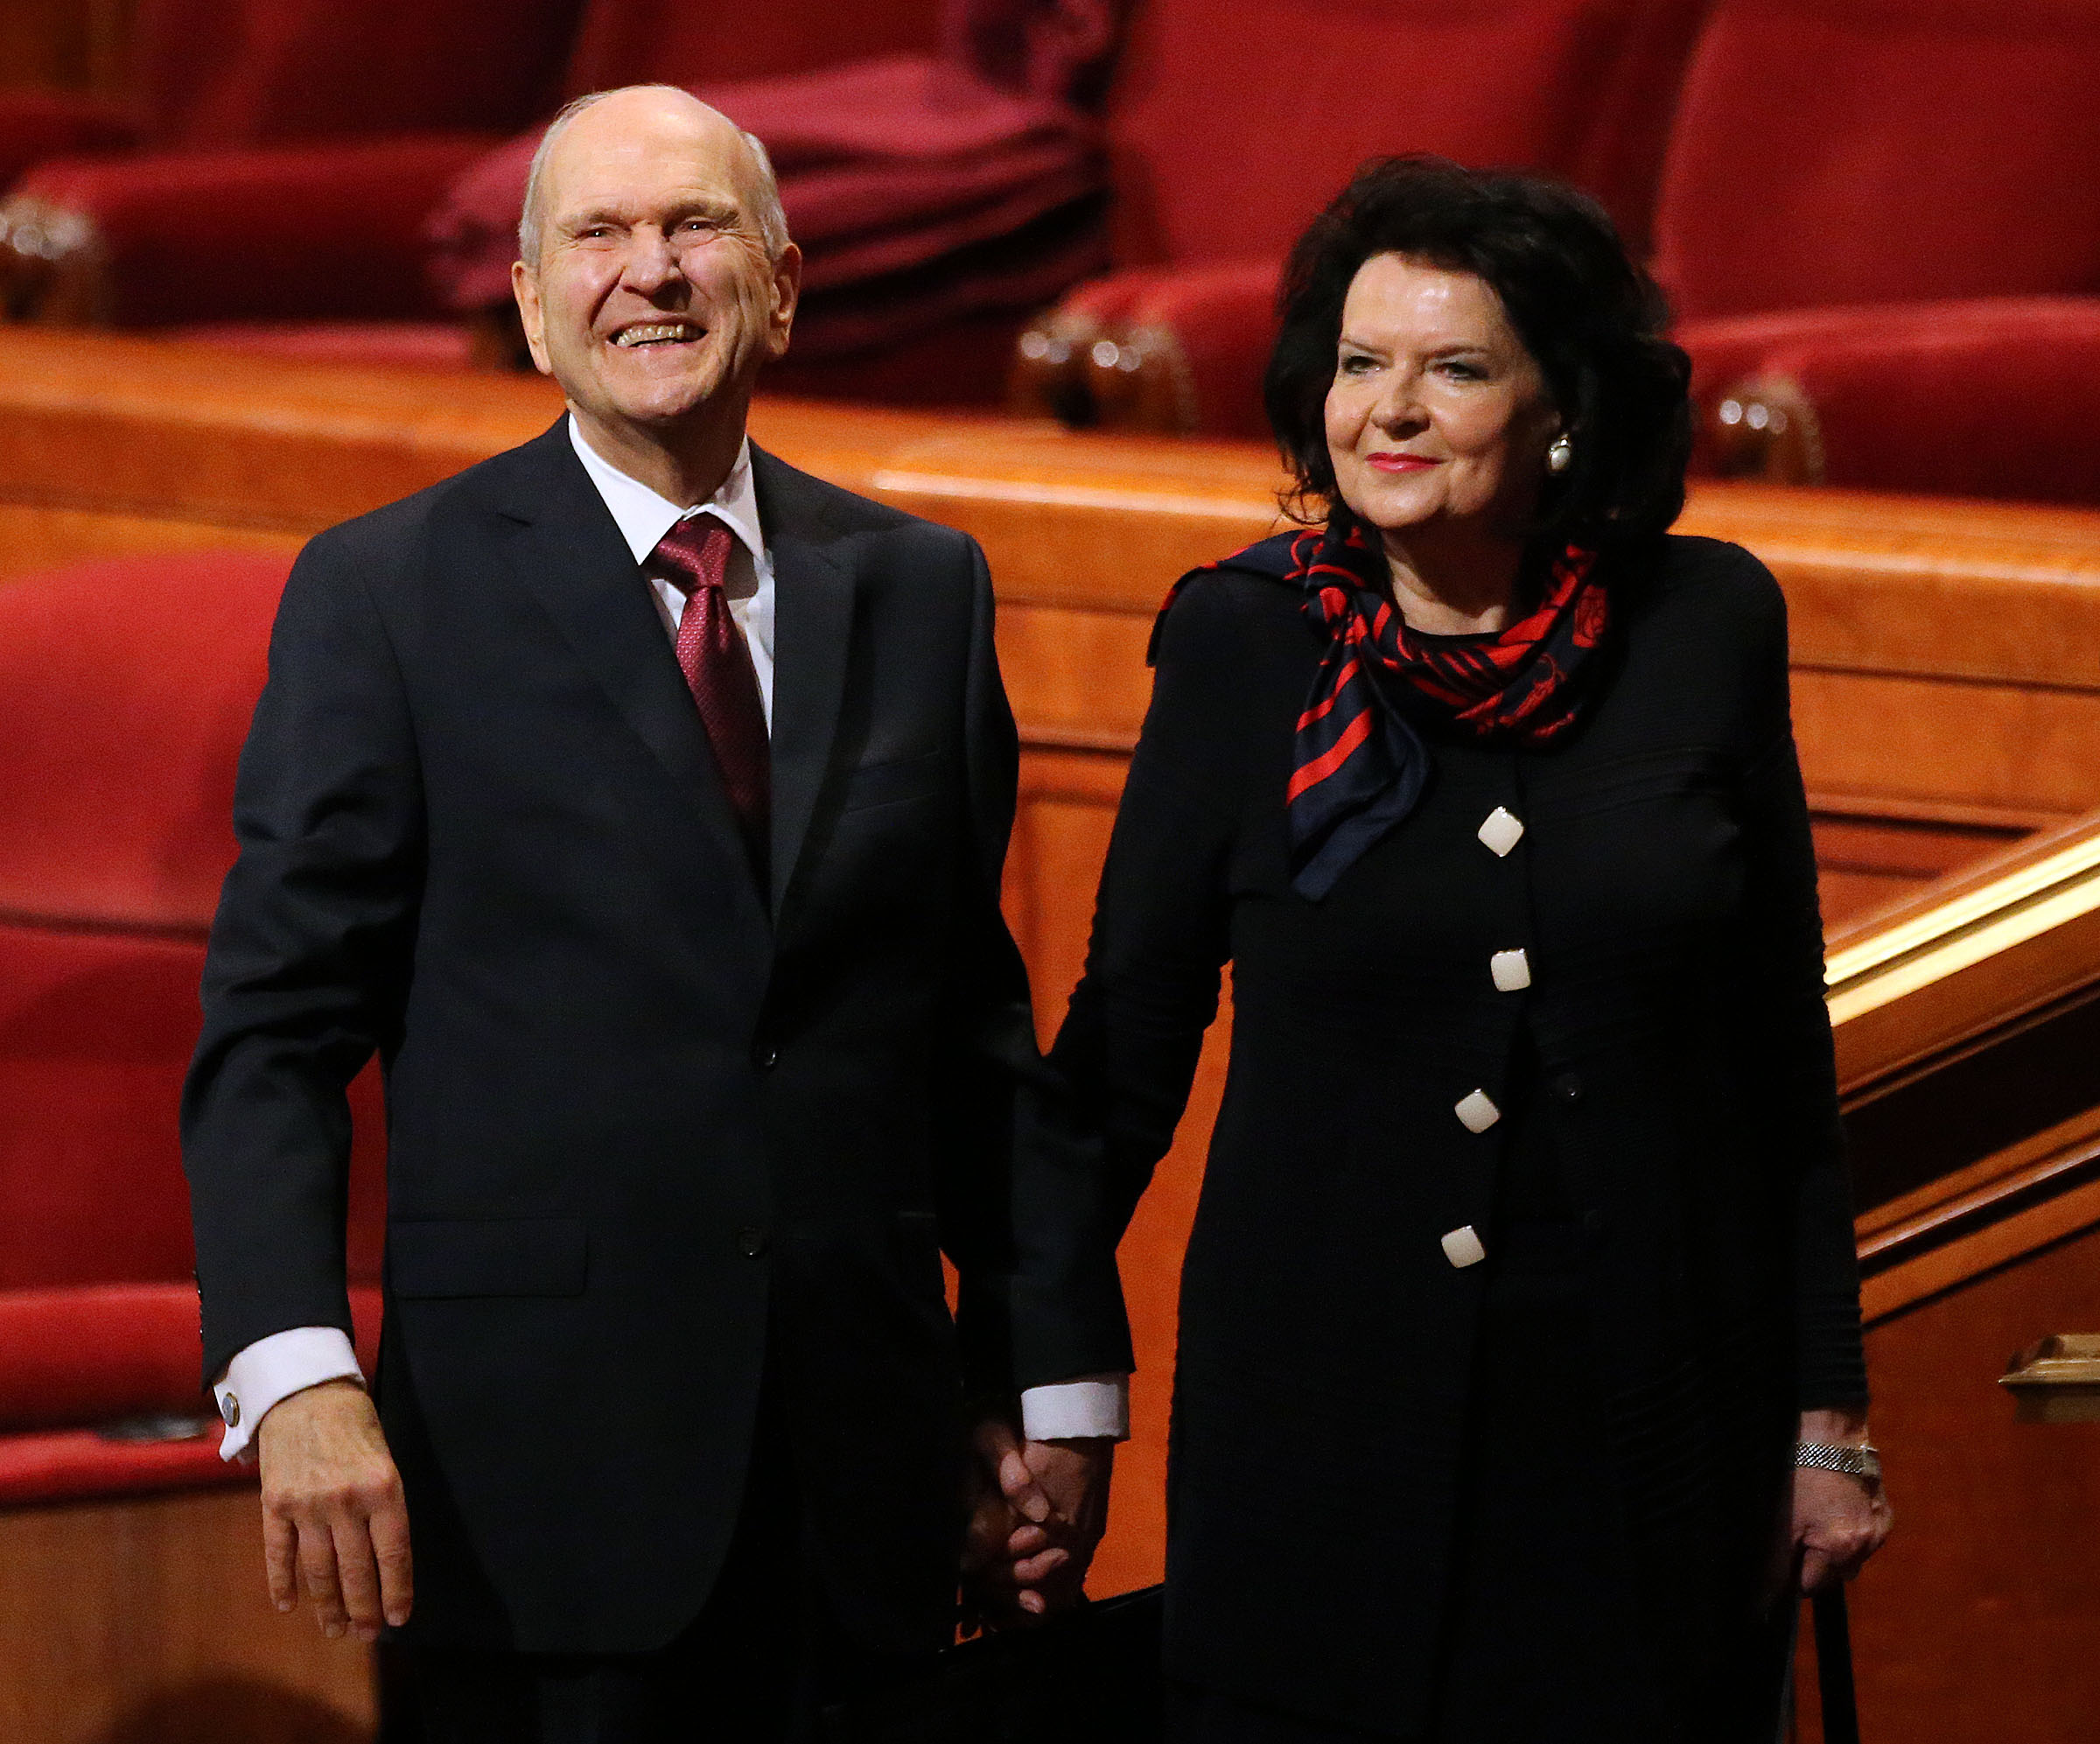 President Russell M. Nelson and his wife, Sister Wendy Watson Nelson, leave the Sunday morning session of the 188th Annual General Conference of The Church of Jesus Christ of Latter-day Saints at the Conference Center in Salt Lake City on Sunday, April 1, 2018.